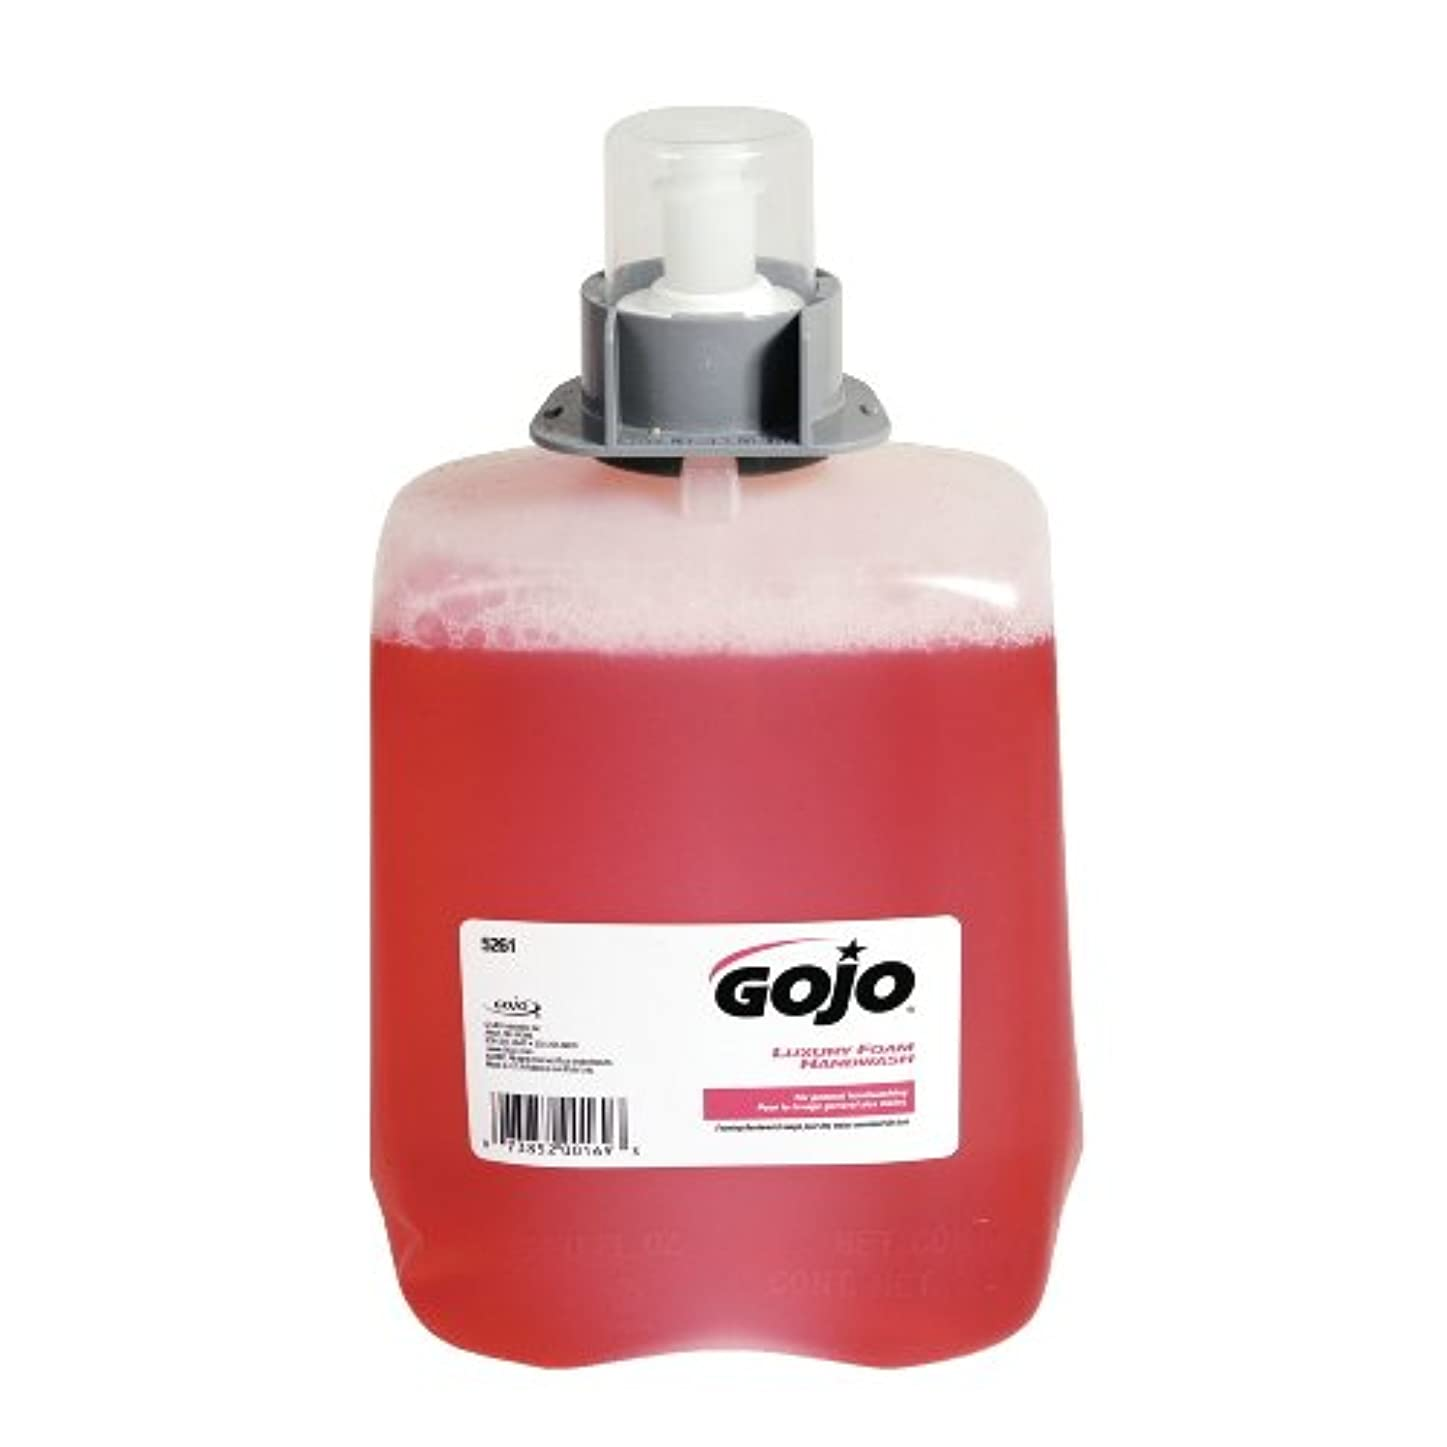 気づくコンピューターのホストGOJ526102 - Gojo Luxury Foam Hand Wash Refill for FMX-20 Dispenser by Gojo